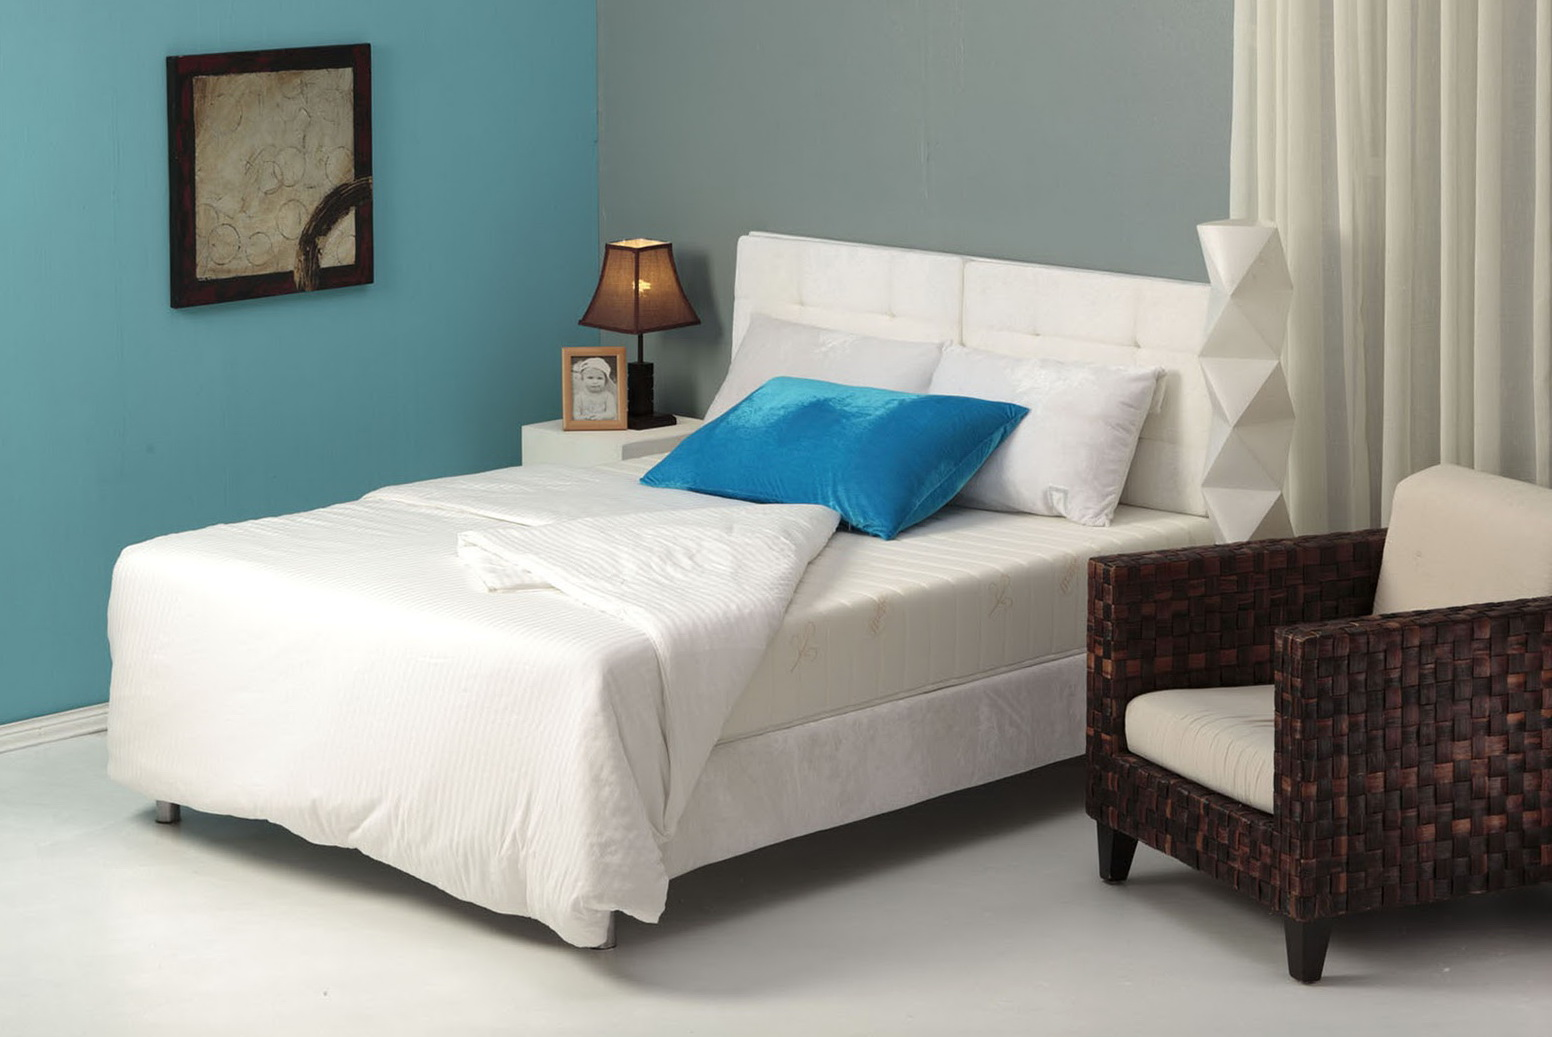 Single Bed Size Malaysia Beds 37883 Home Design Ideas